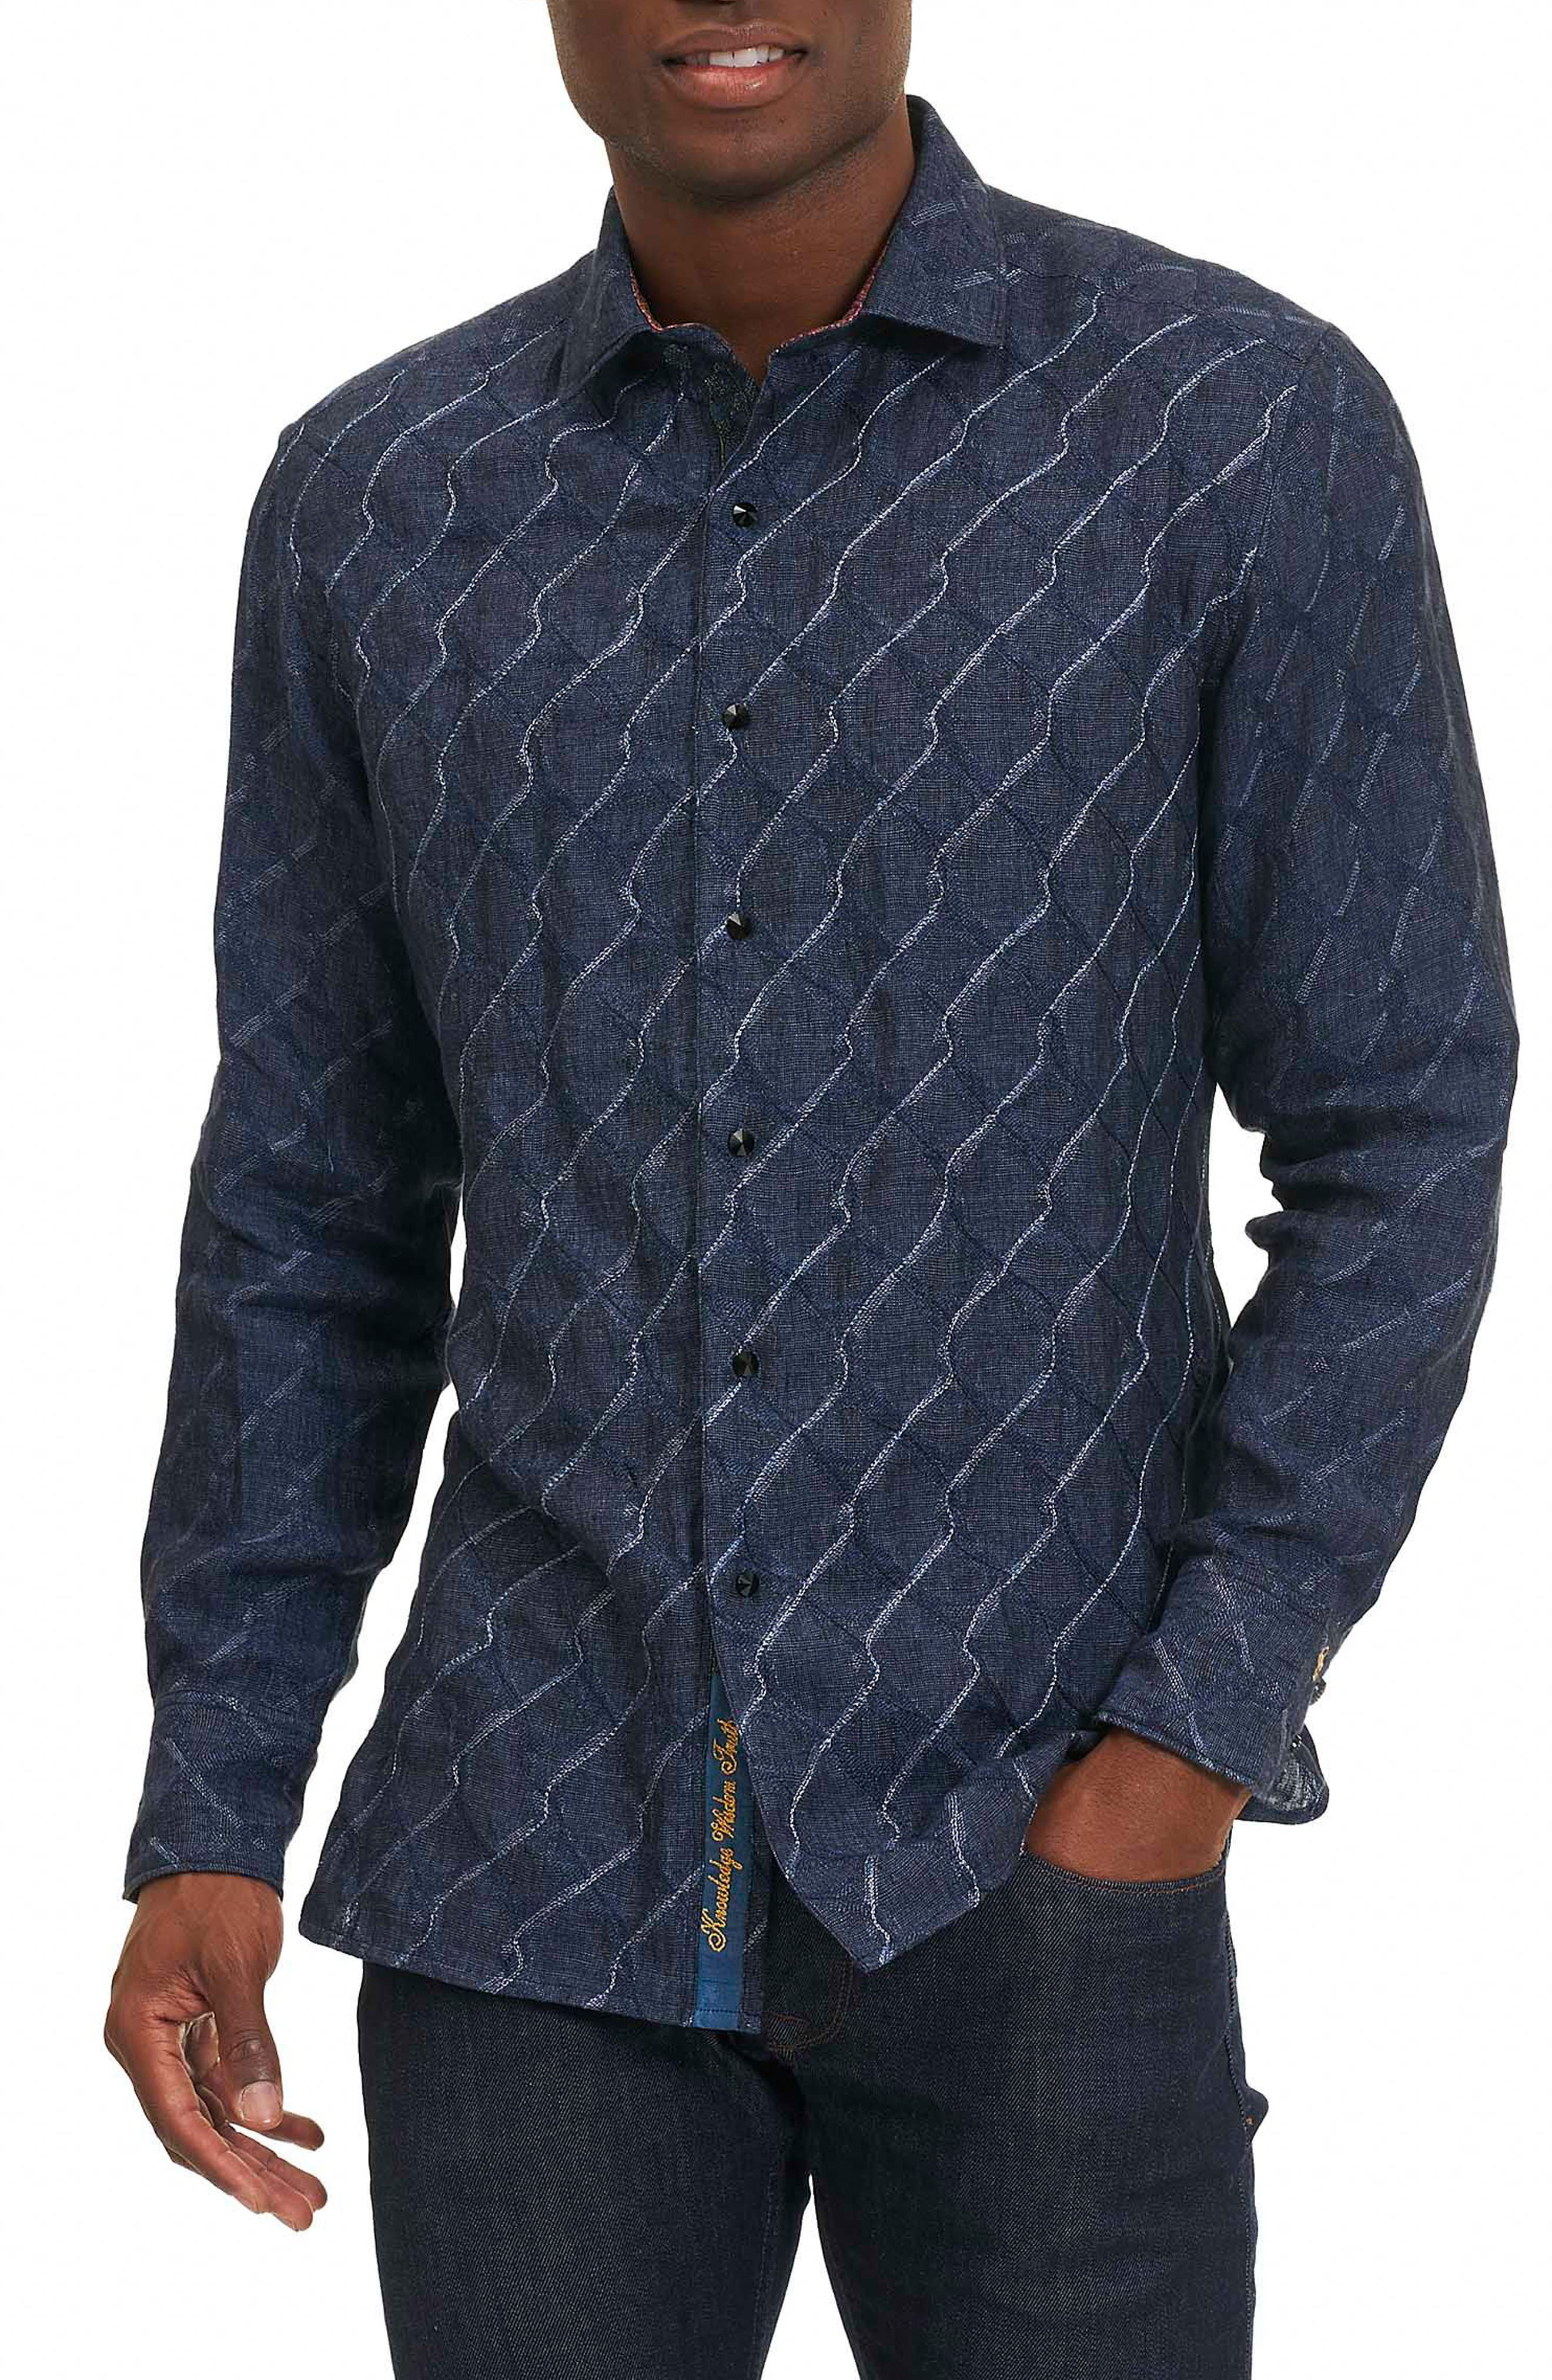 Alternate Image 1 Selected - Robert Graham Siddhartha Classic Fit Sport Shirt (Limited Edition)